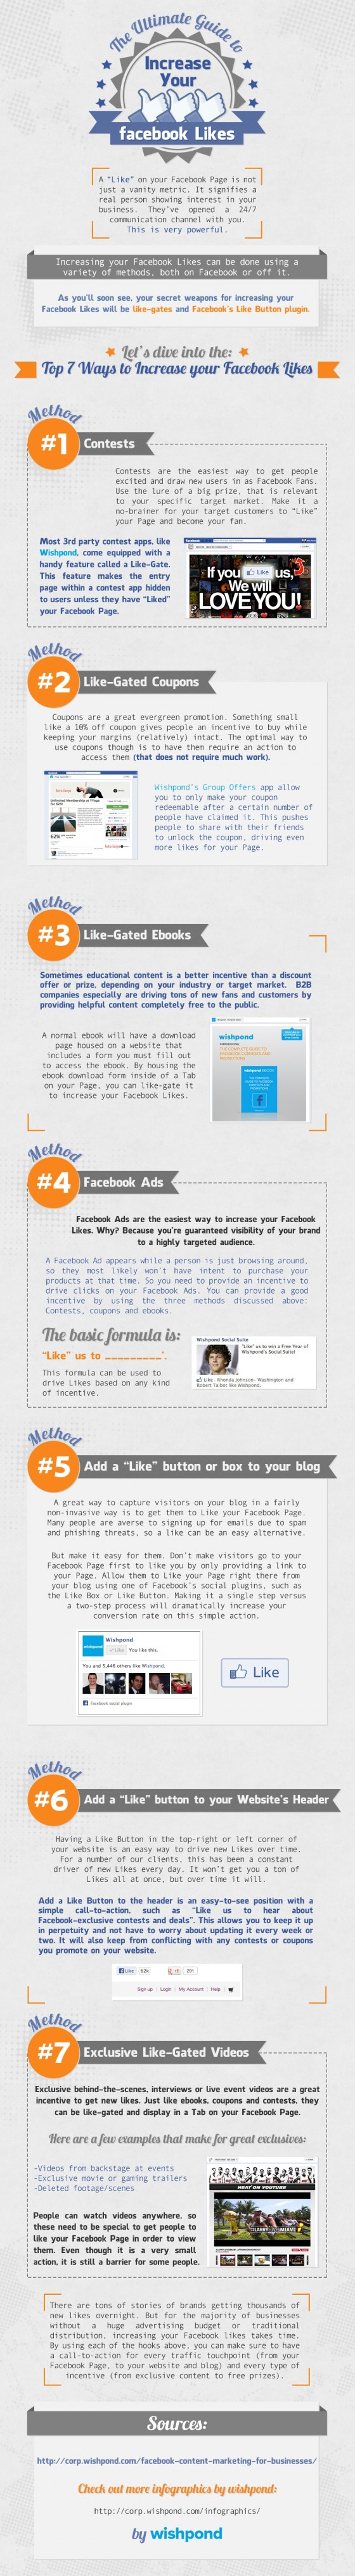 Jaime-page-facebook-infographie